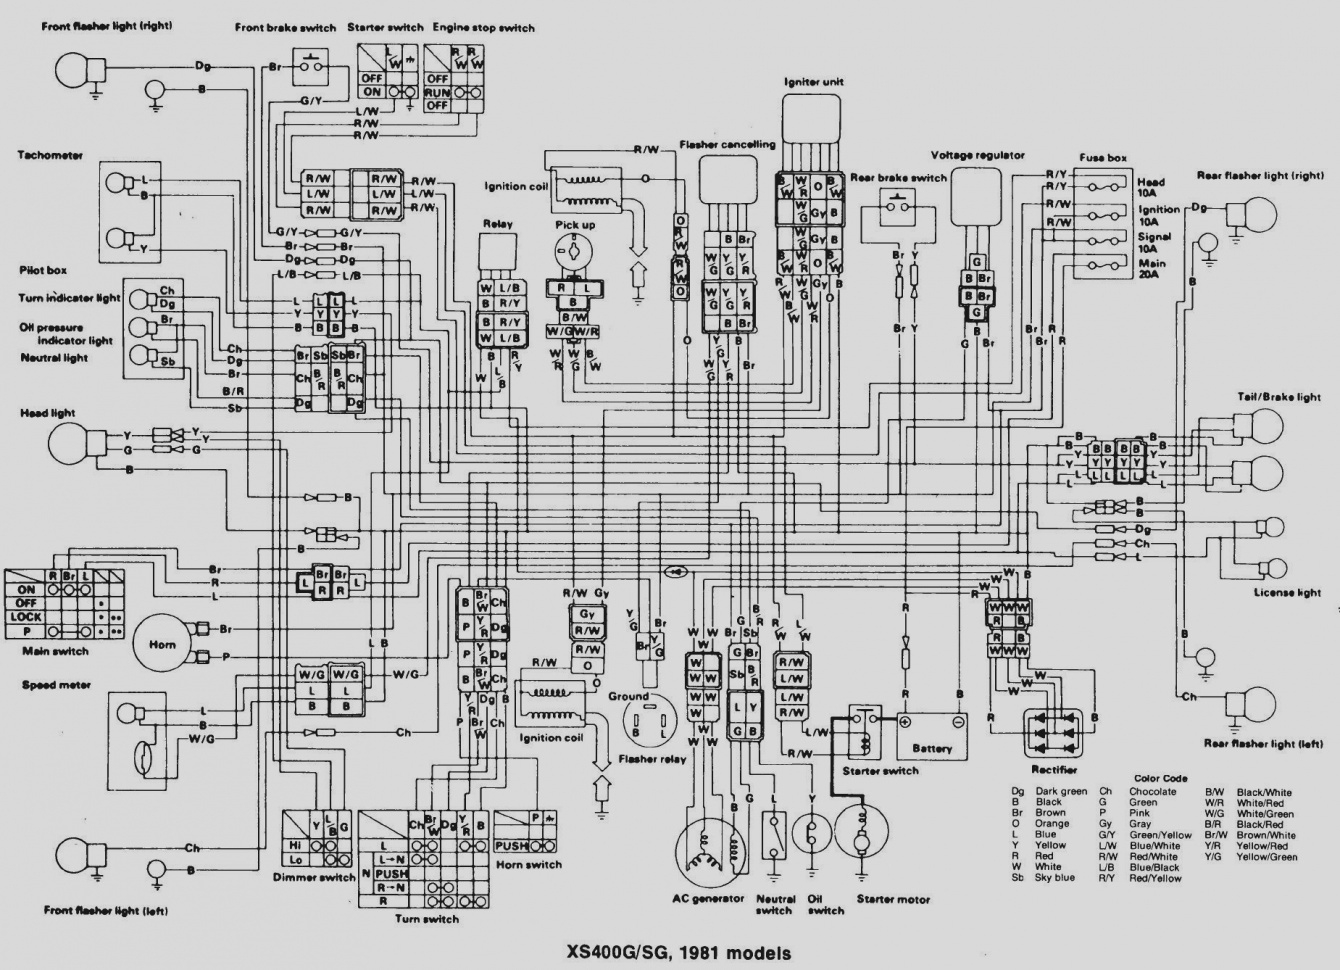 yamaha zeal wiring diagram yamaha crux wiring diagram $ download-app.co yamaha tach wiring diagram #8